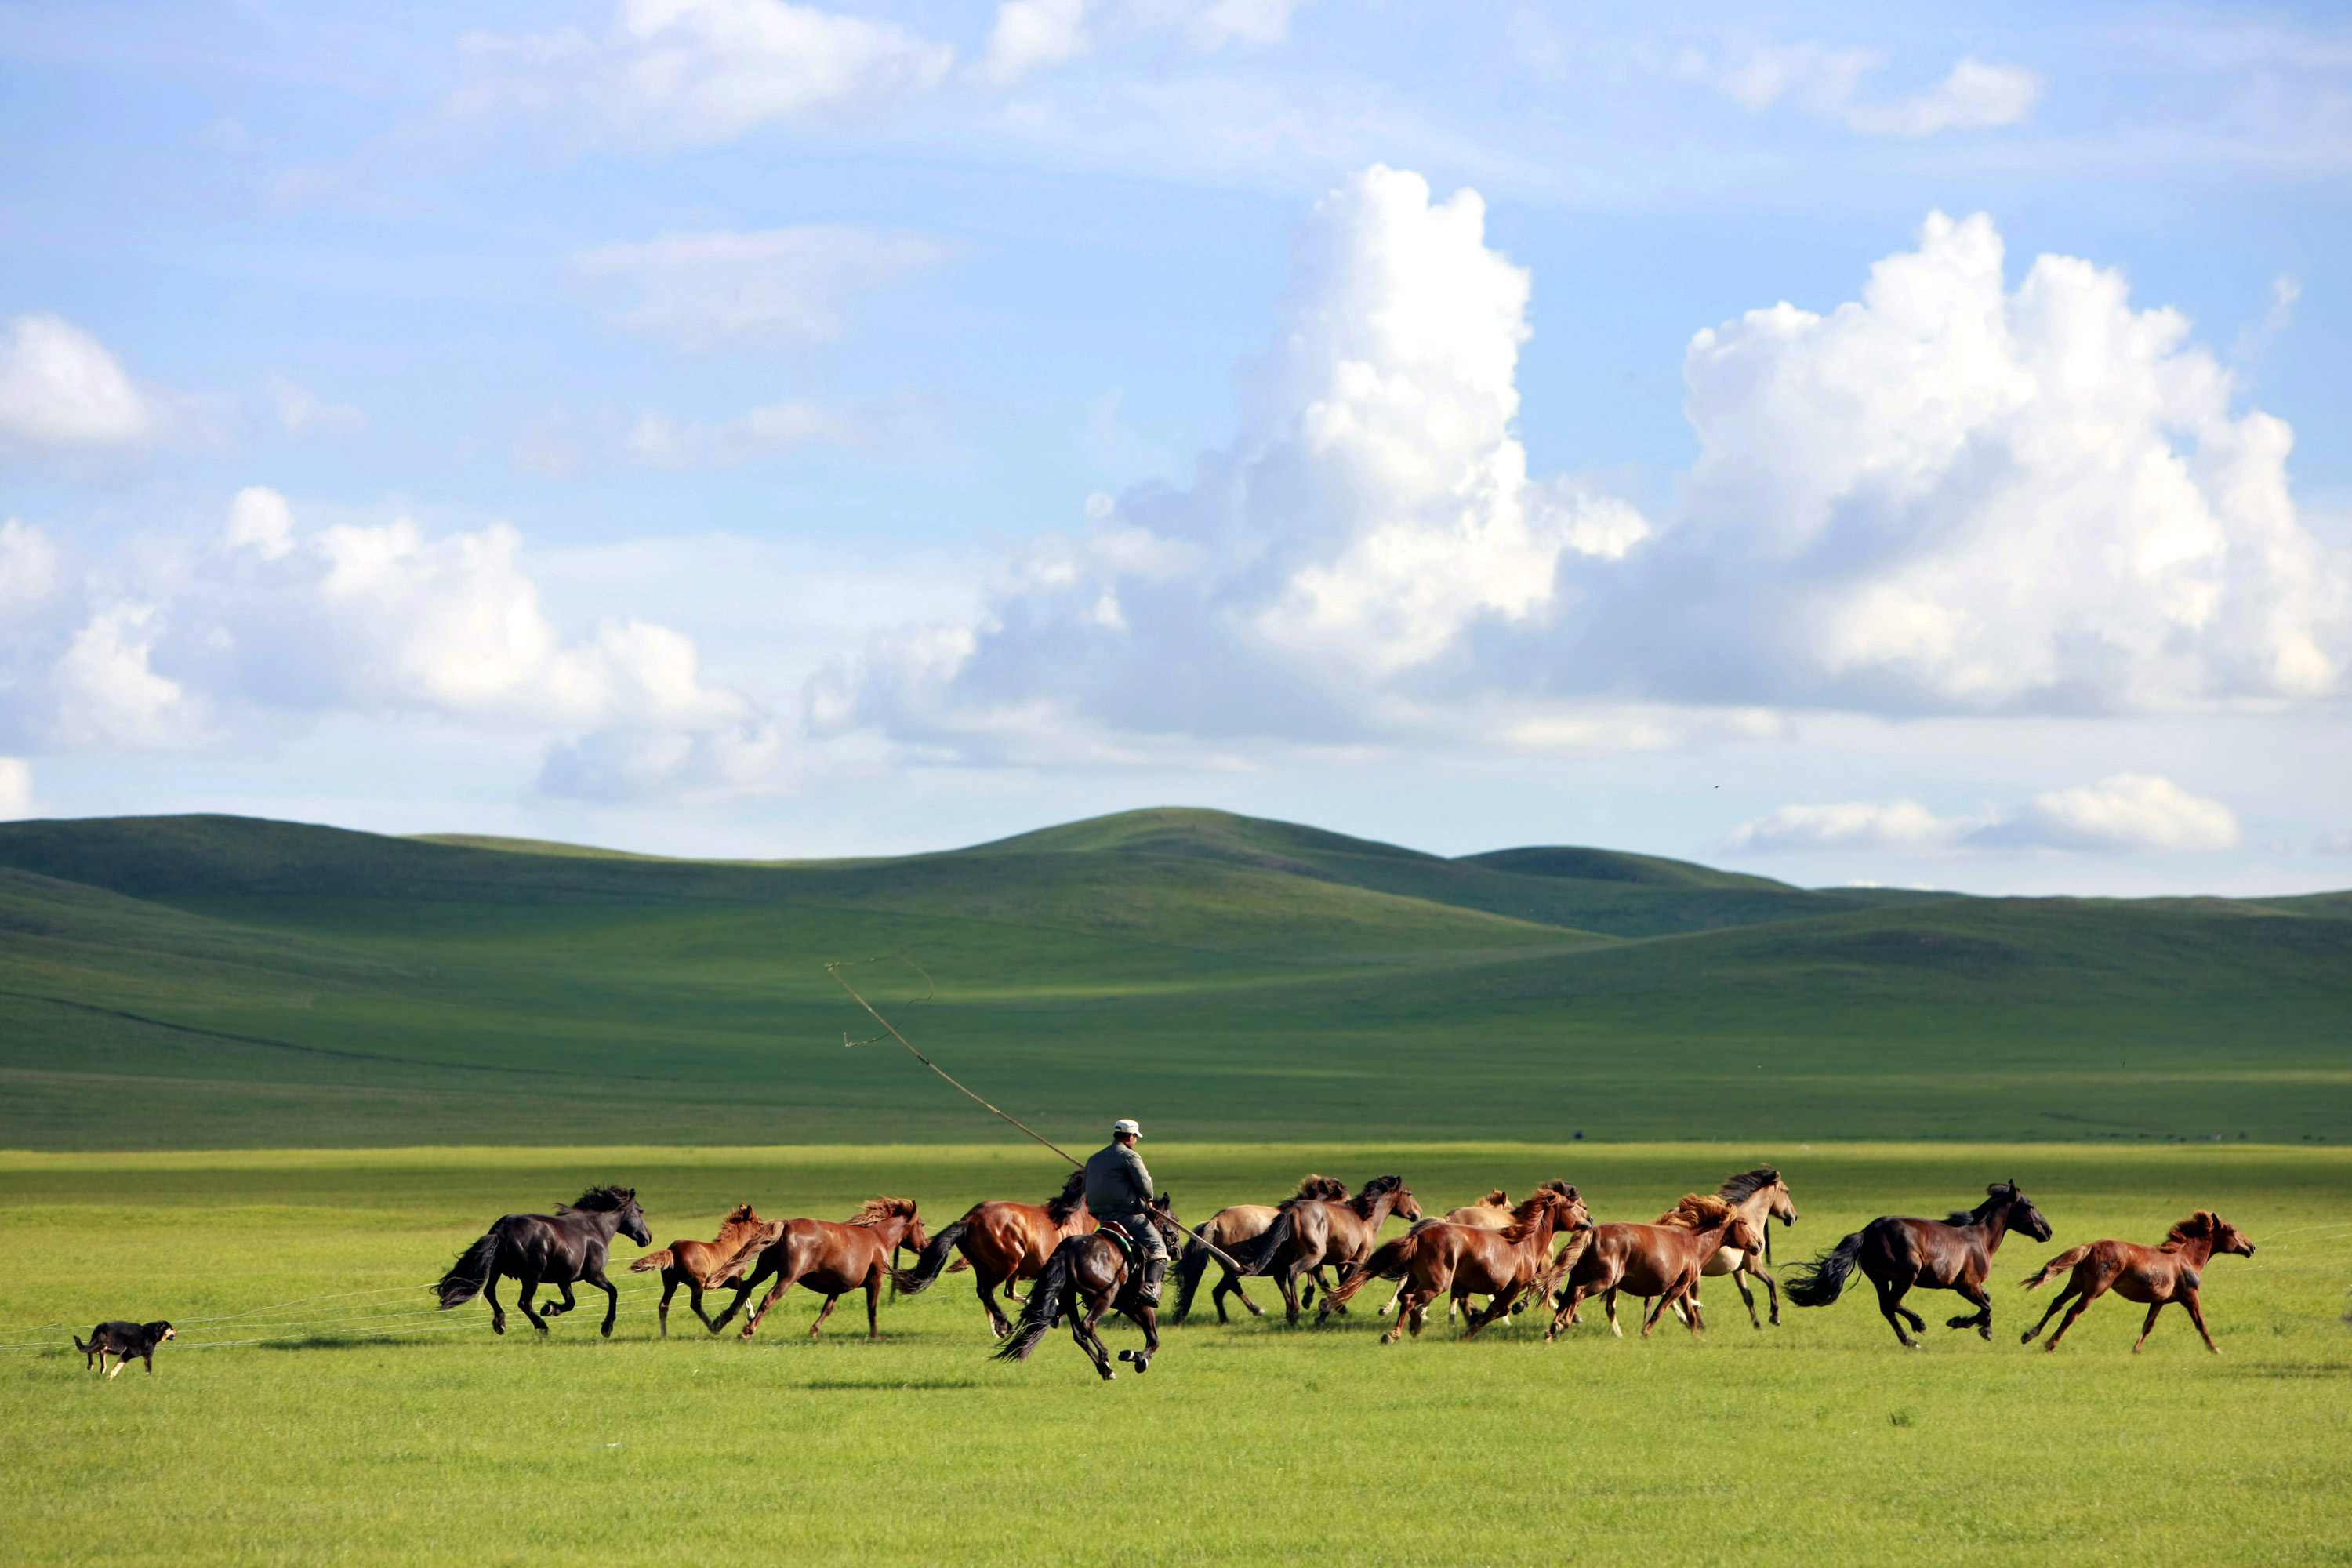 A man whips a herd of horses in Xilin Gol League, in China's Inner Mongolia Autonomous Region, July 13, 2013.